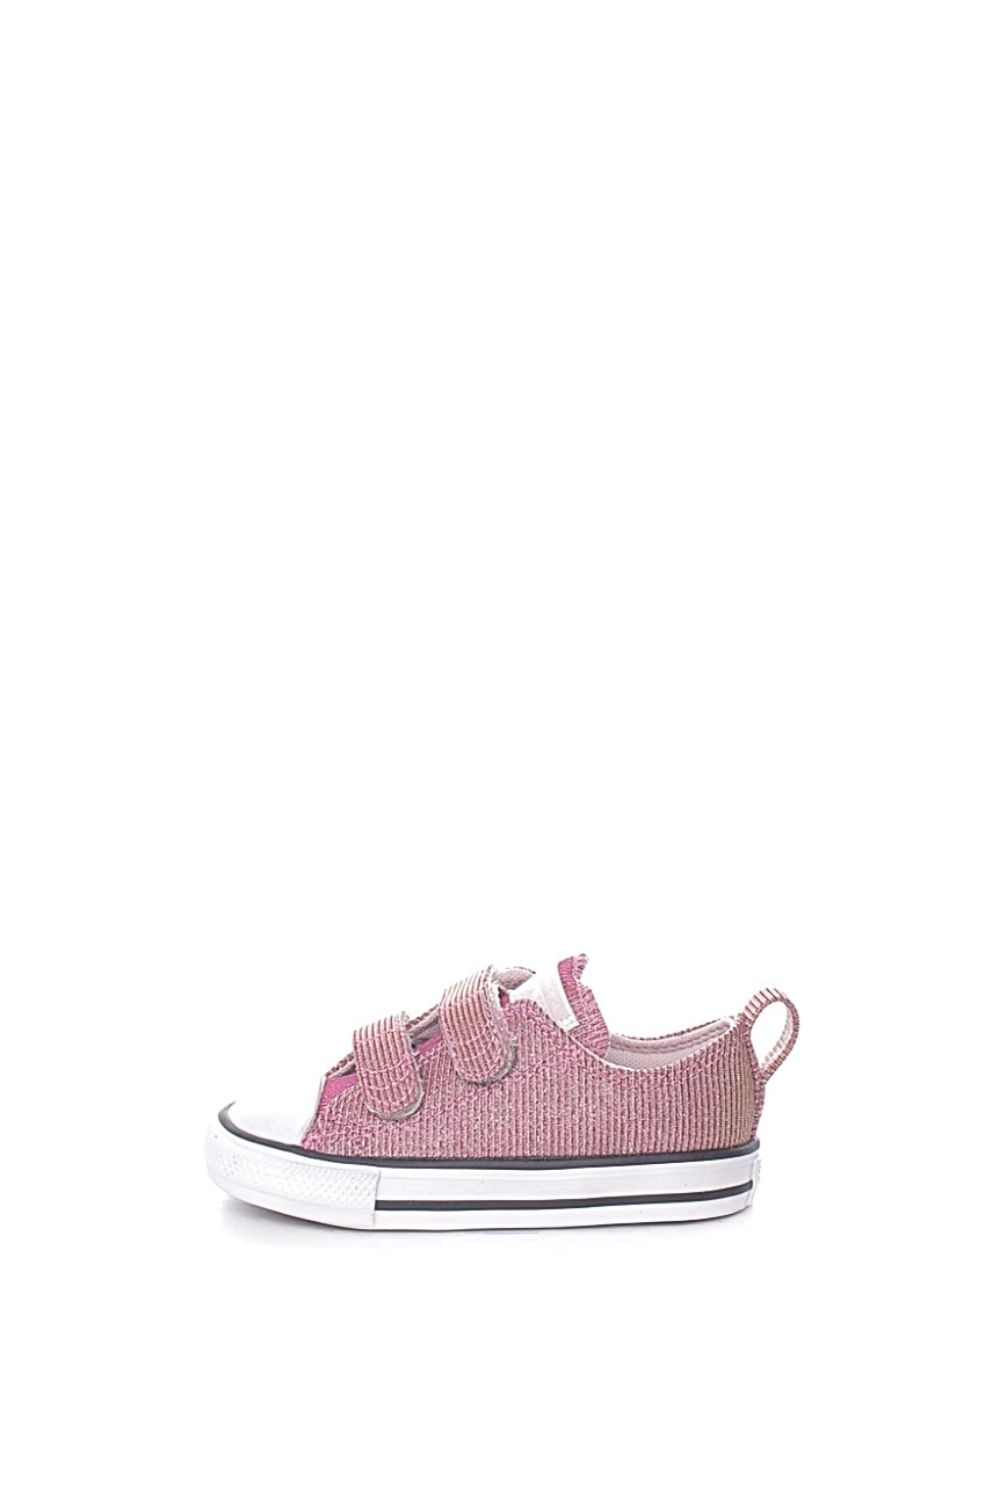 CONVERSE – Βρεφικά sneakers CONVERSE Chuck Taylor All Star 2V ροζ